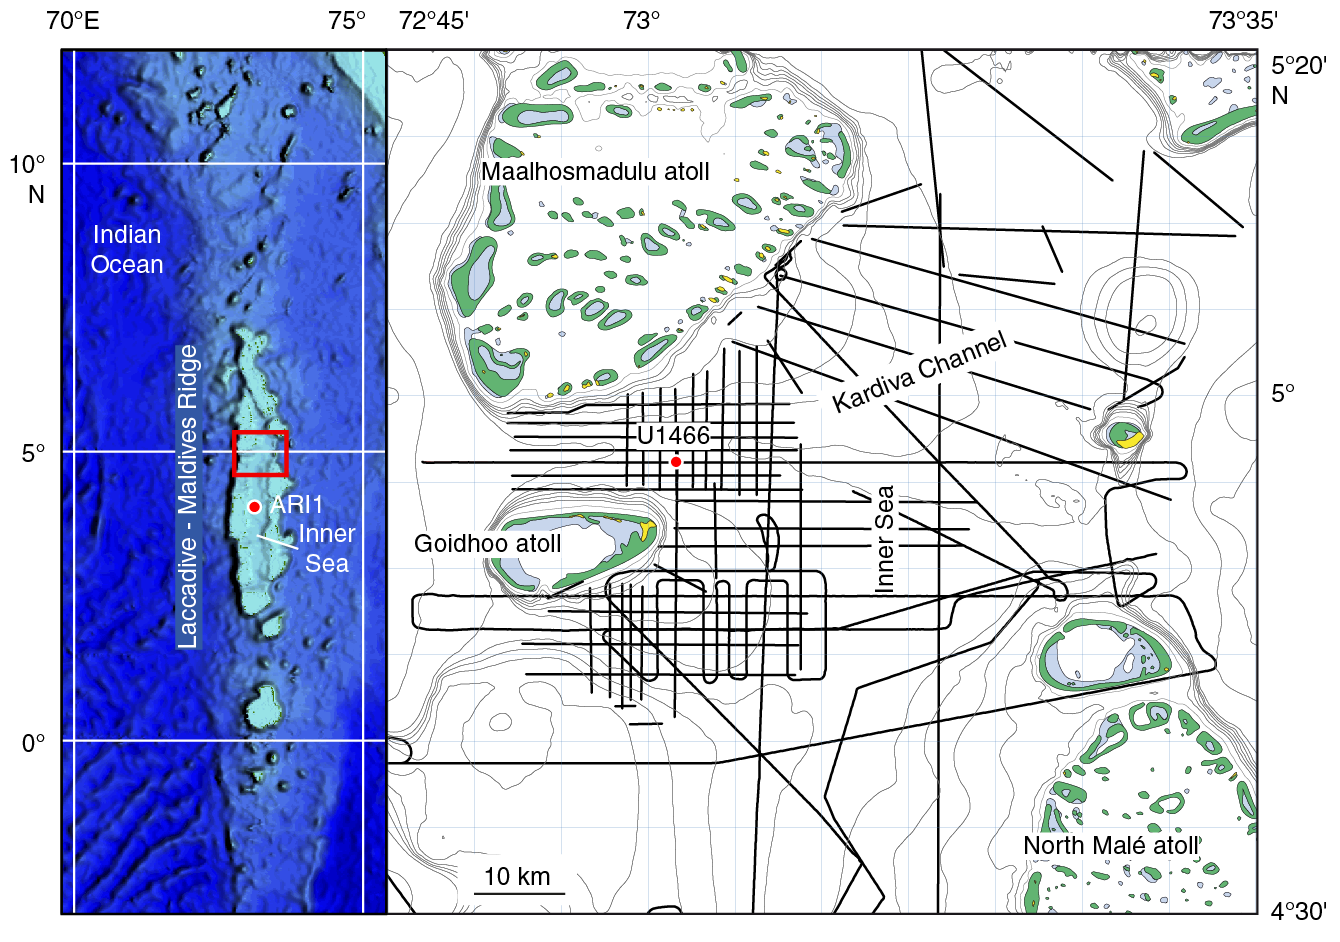 Iodp Publications Volume 359 Expedition Reports Site U1466 Rotary Fan Switch Wiring Diagram Likewise On 3 Sd Figure F1 Map Of Located In The Kardiva Channel 1880 M East U1465